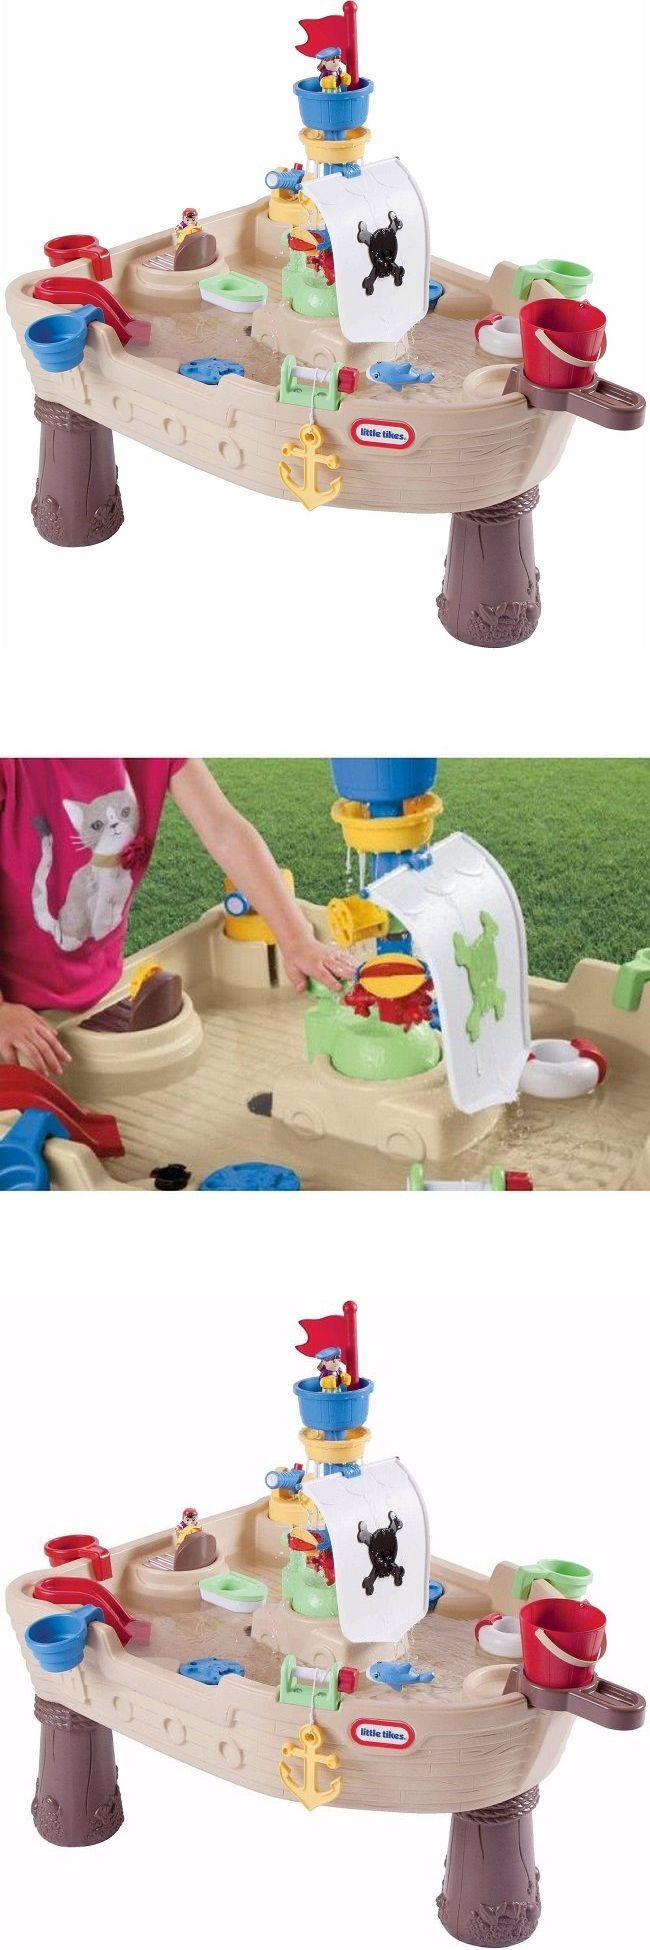 Sandbox Toys and Sandboxes 145990: Little Tikes Table Pirate Ship Anchors Water Set Toys Toy Outdoor Play Playset -> BUY IT NOW ONLY: $83.69 on eBay!